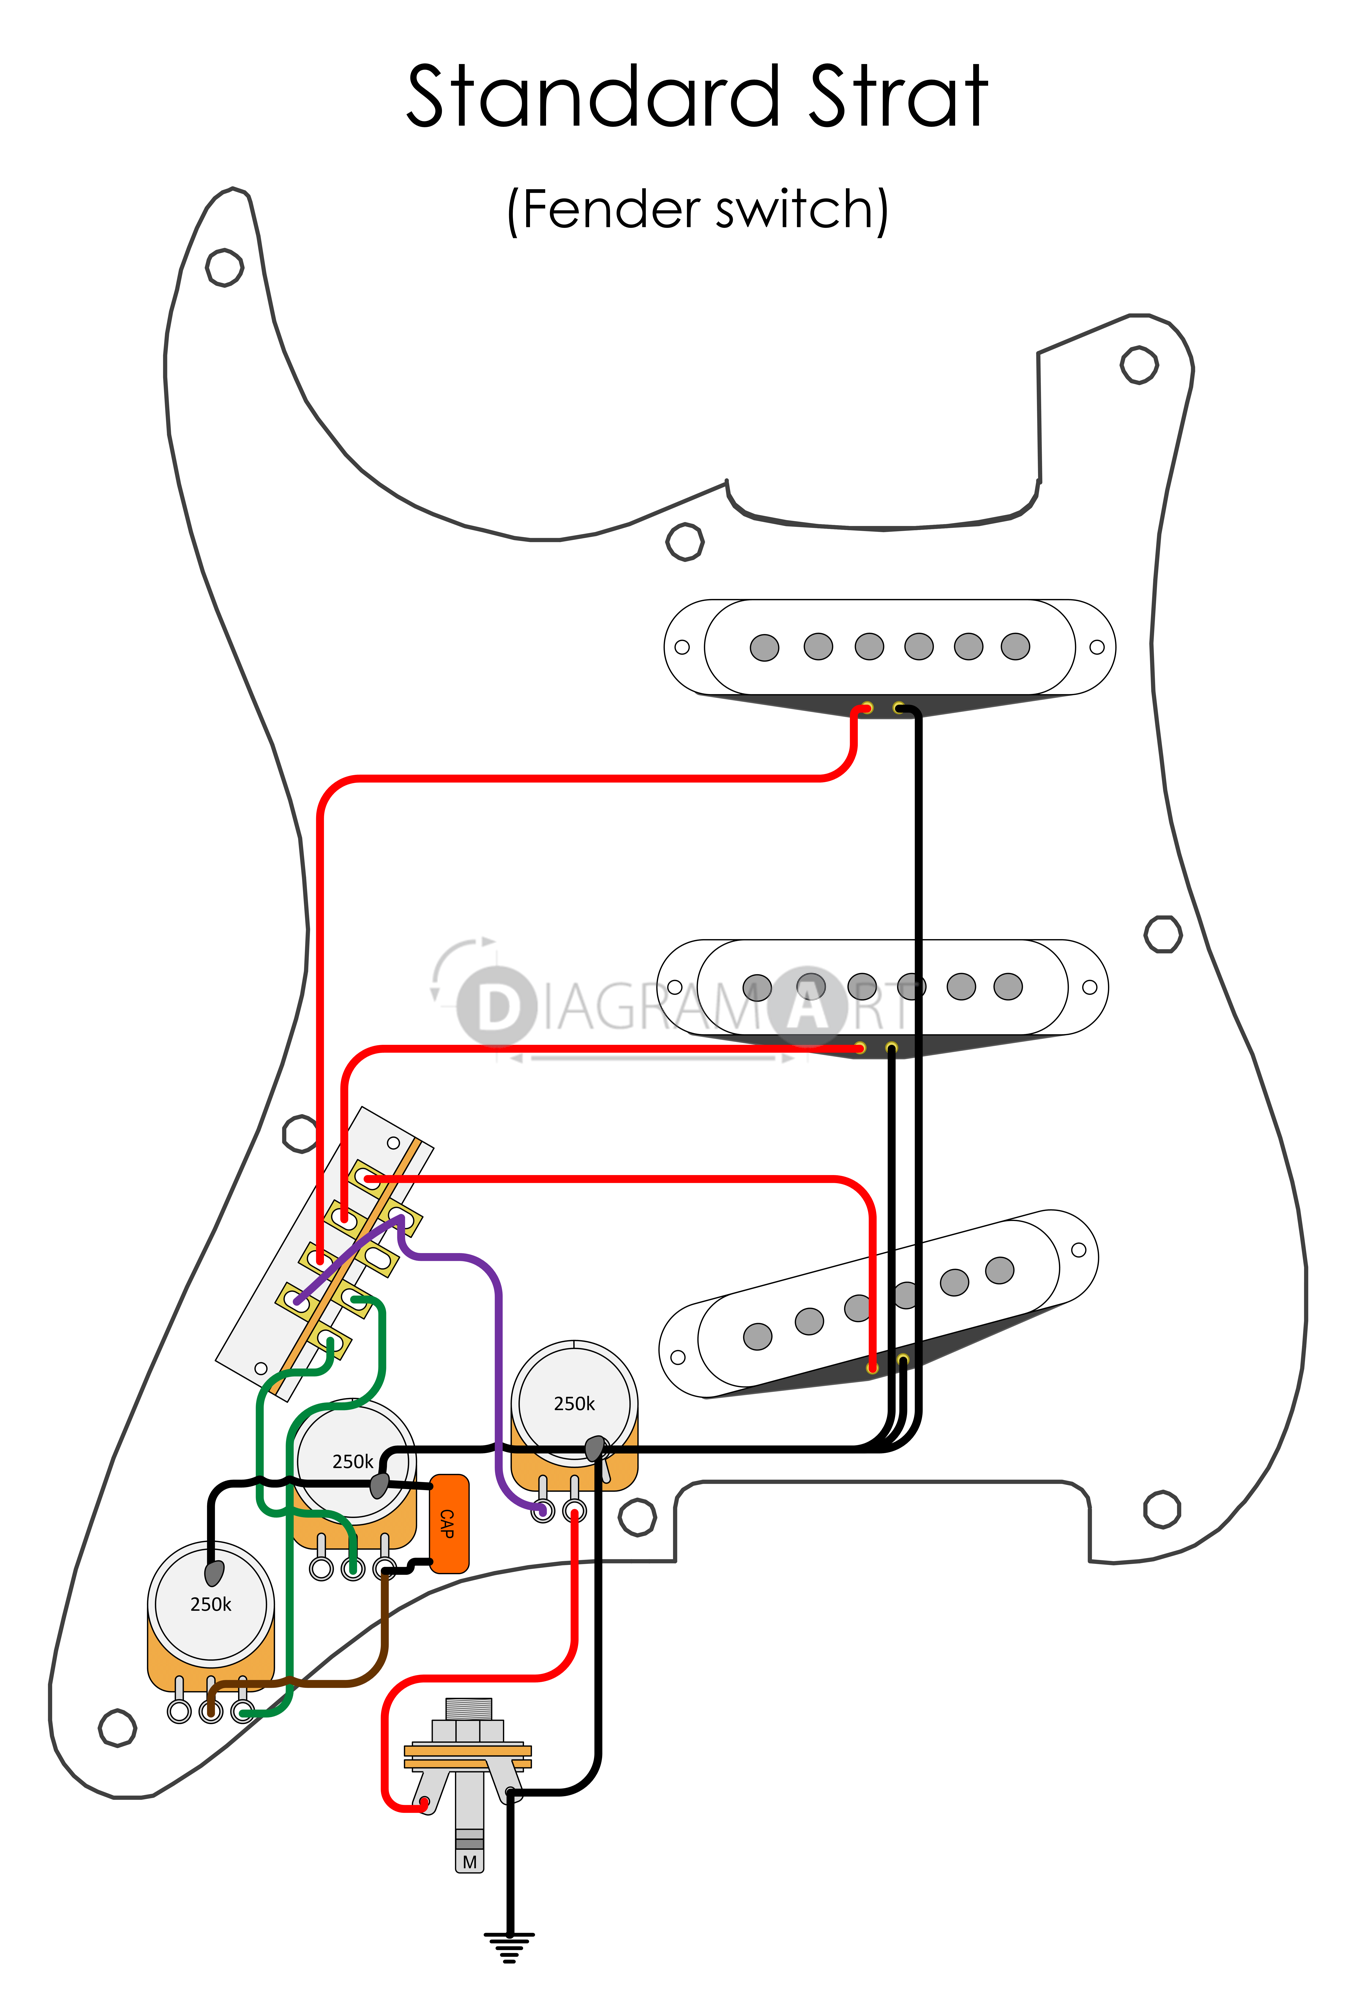 download_42ae3ecf 1629 445f 9f37 9900f2dd1900?v=1476389489 electric guitar wiring standard strat (fender switch) [electric standard stratocaster wiring at eliteediting.co